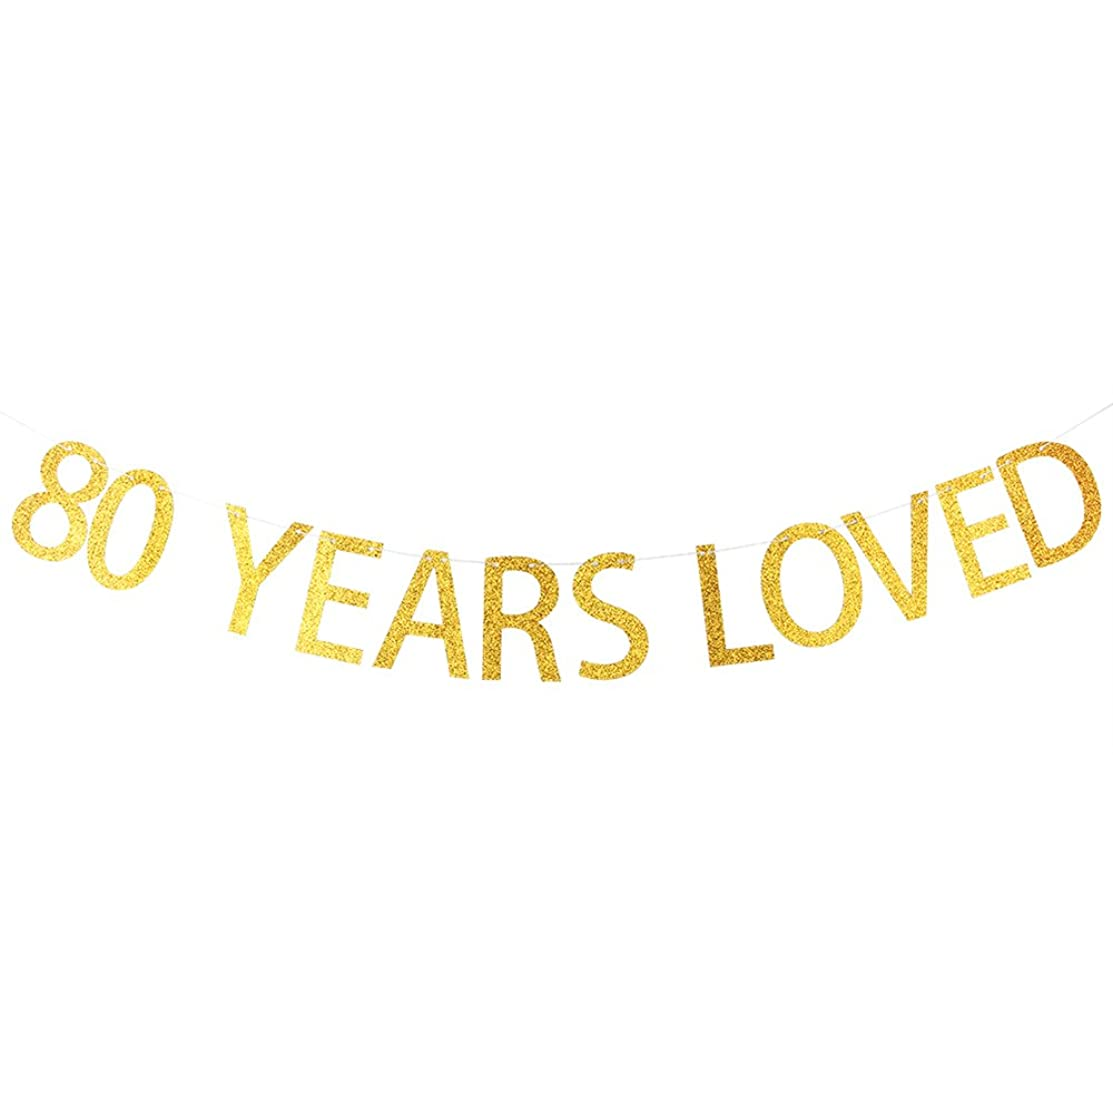 80 YEARS LOVED Gold Glitter Banner for 80th Birthday, Wedding Anniversary Party Bunting Photo Props Decorations